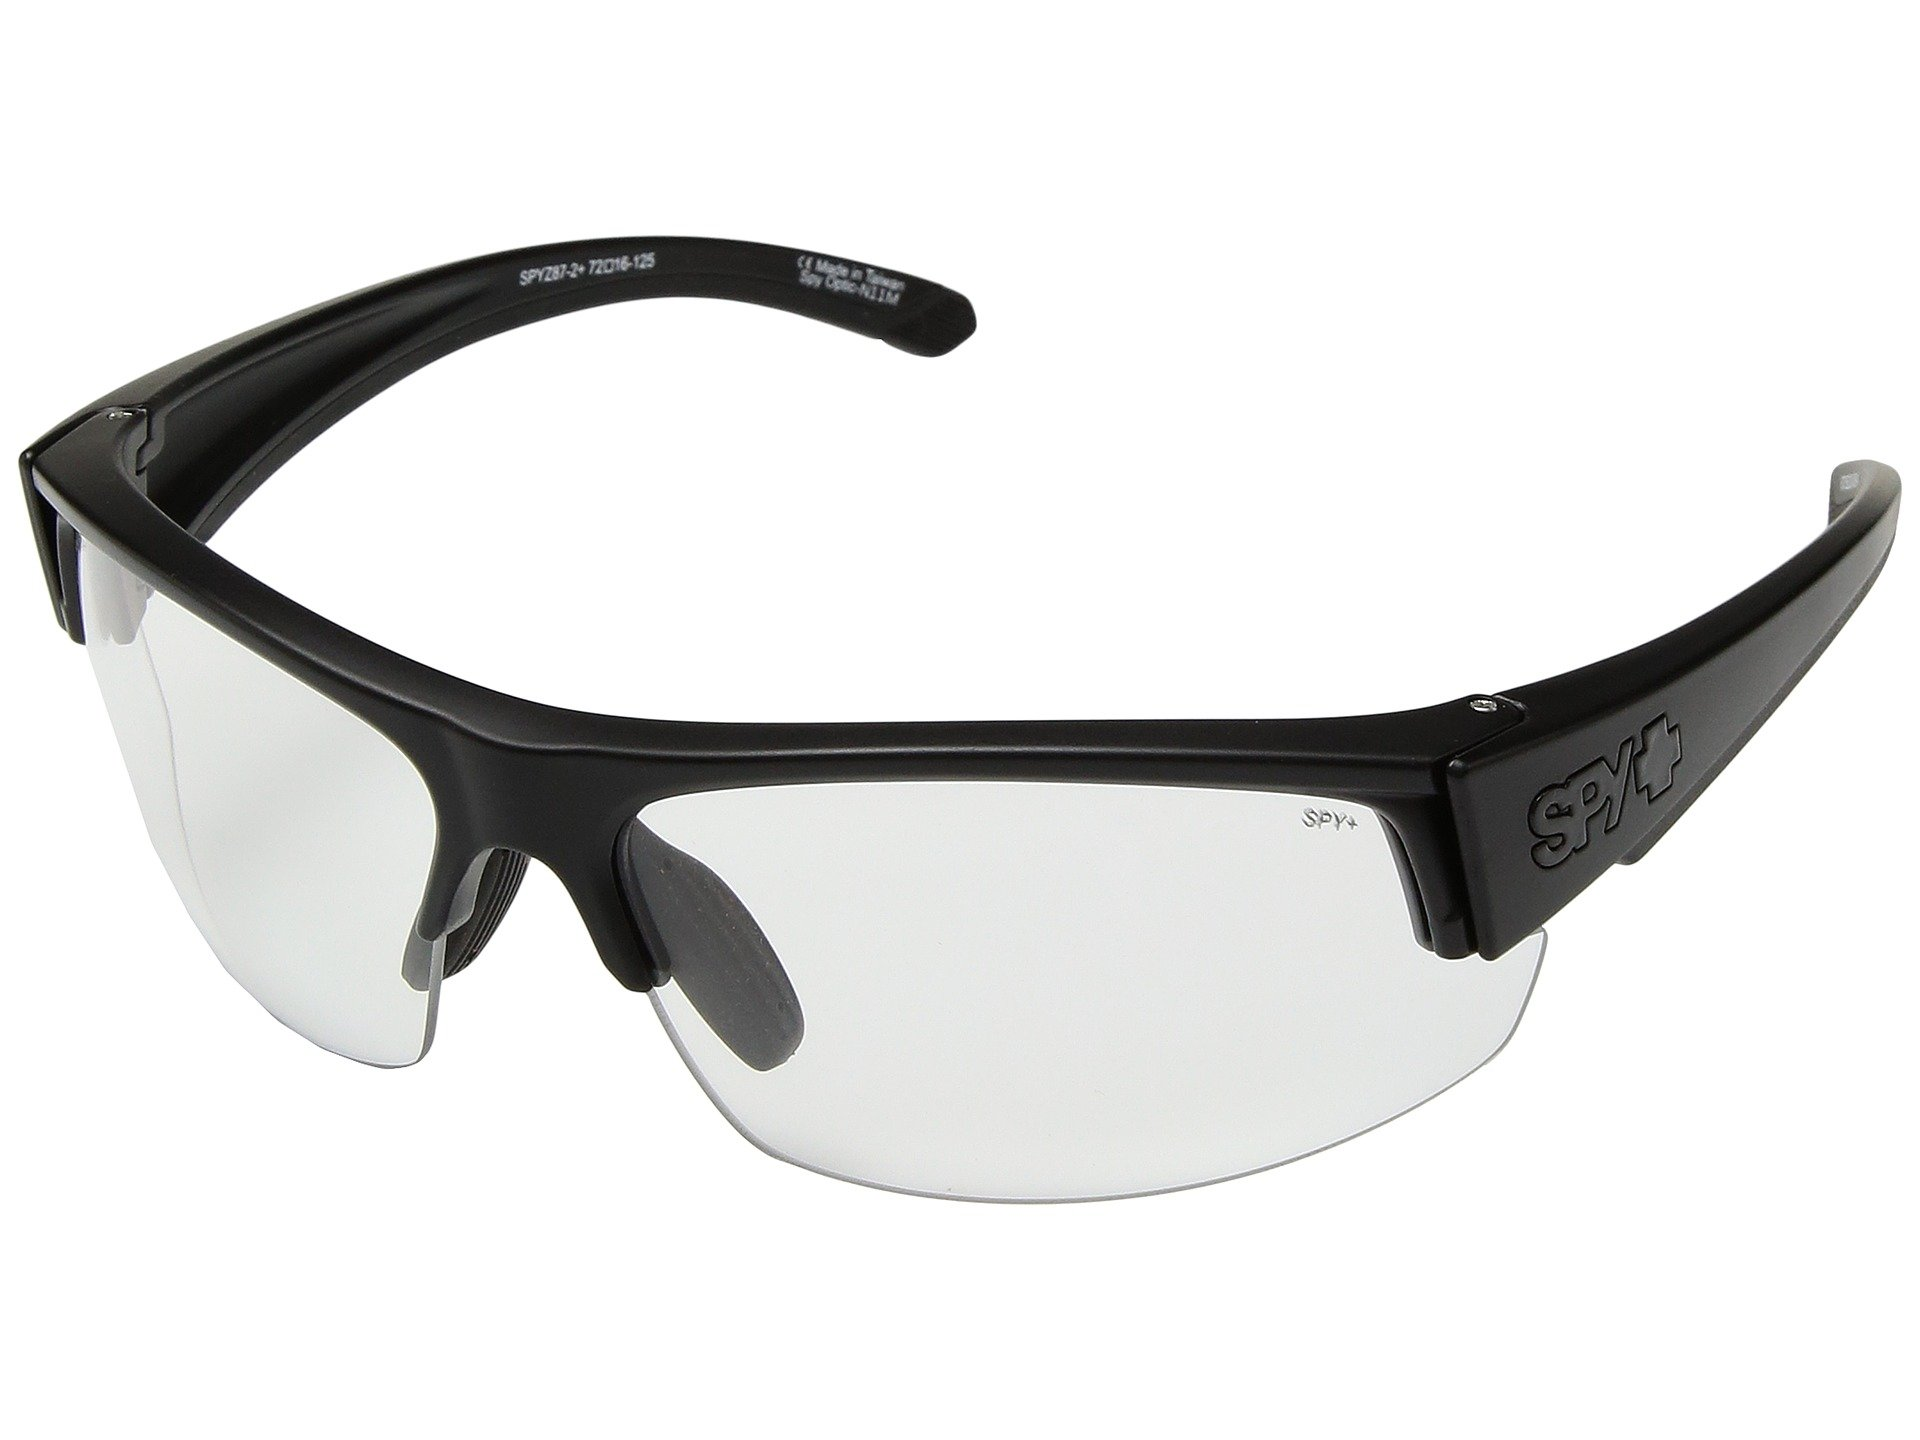 SPY Optic Sprinter Sunglasses for Men and for Women | Polarized Styles Available | ANSI-certified with Patented Detail Boosting Happy Lens Tech for Pure Performance by Spy